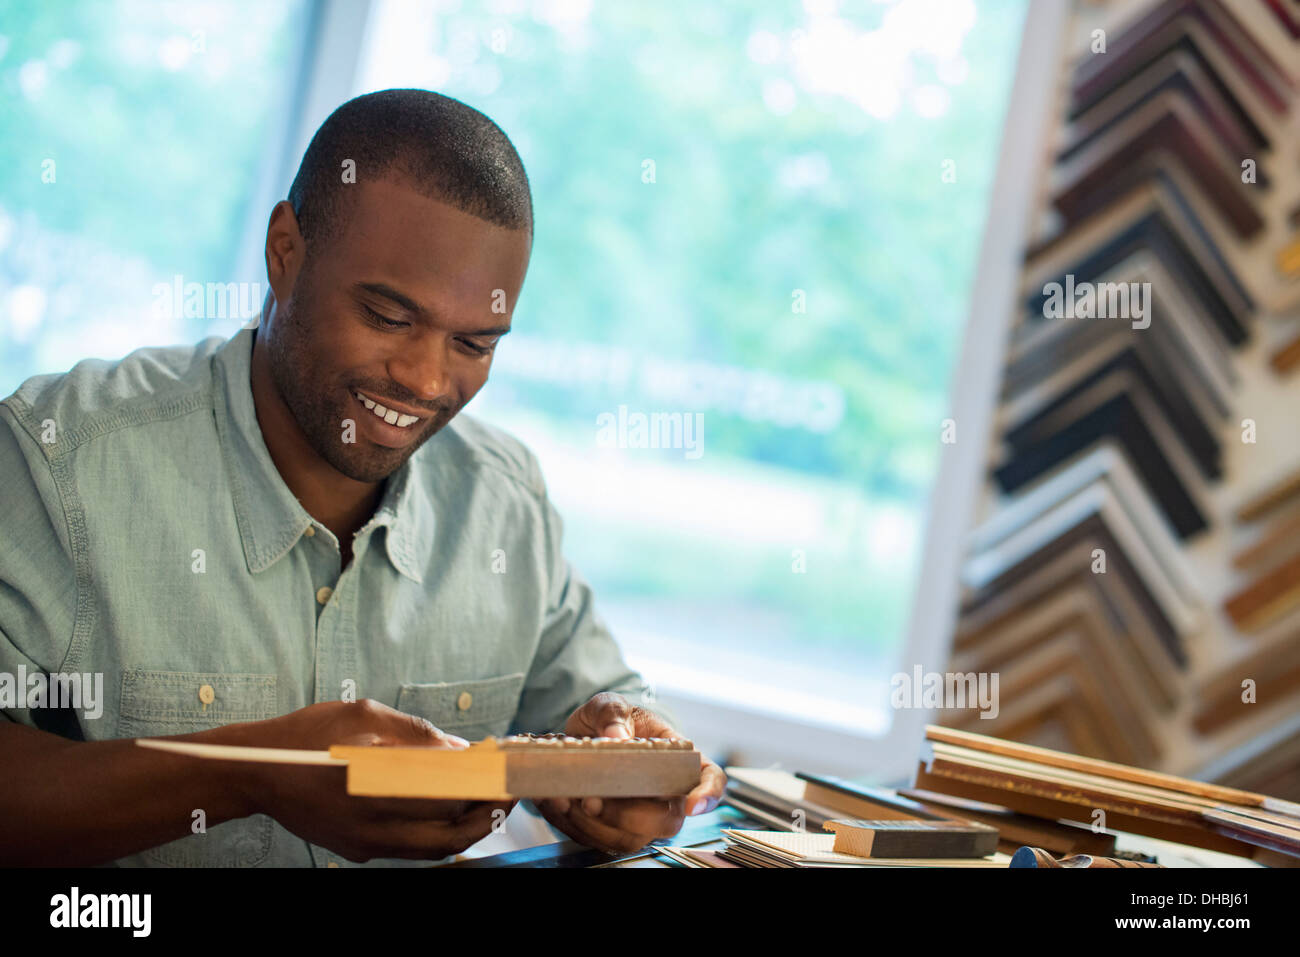 A young man at his workbench in a picture framing studio. Surrounded by samples. - Stock Image